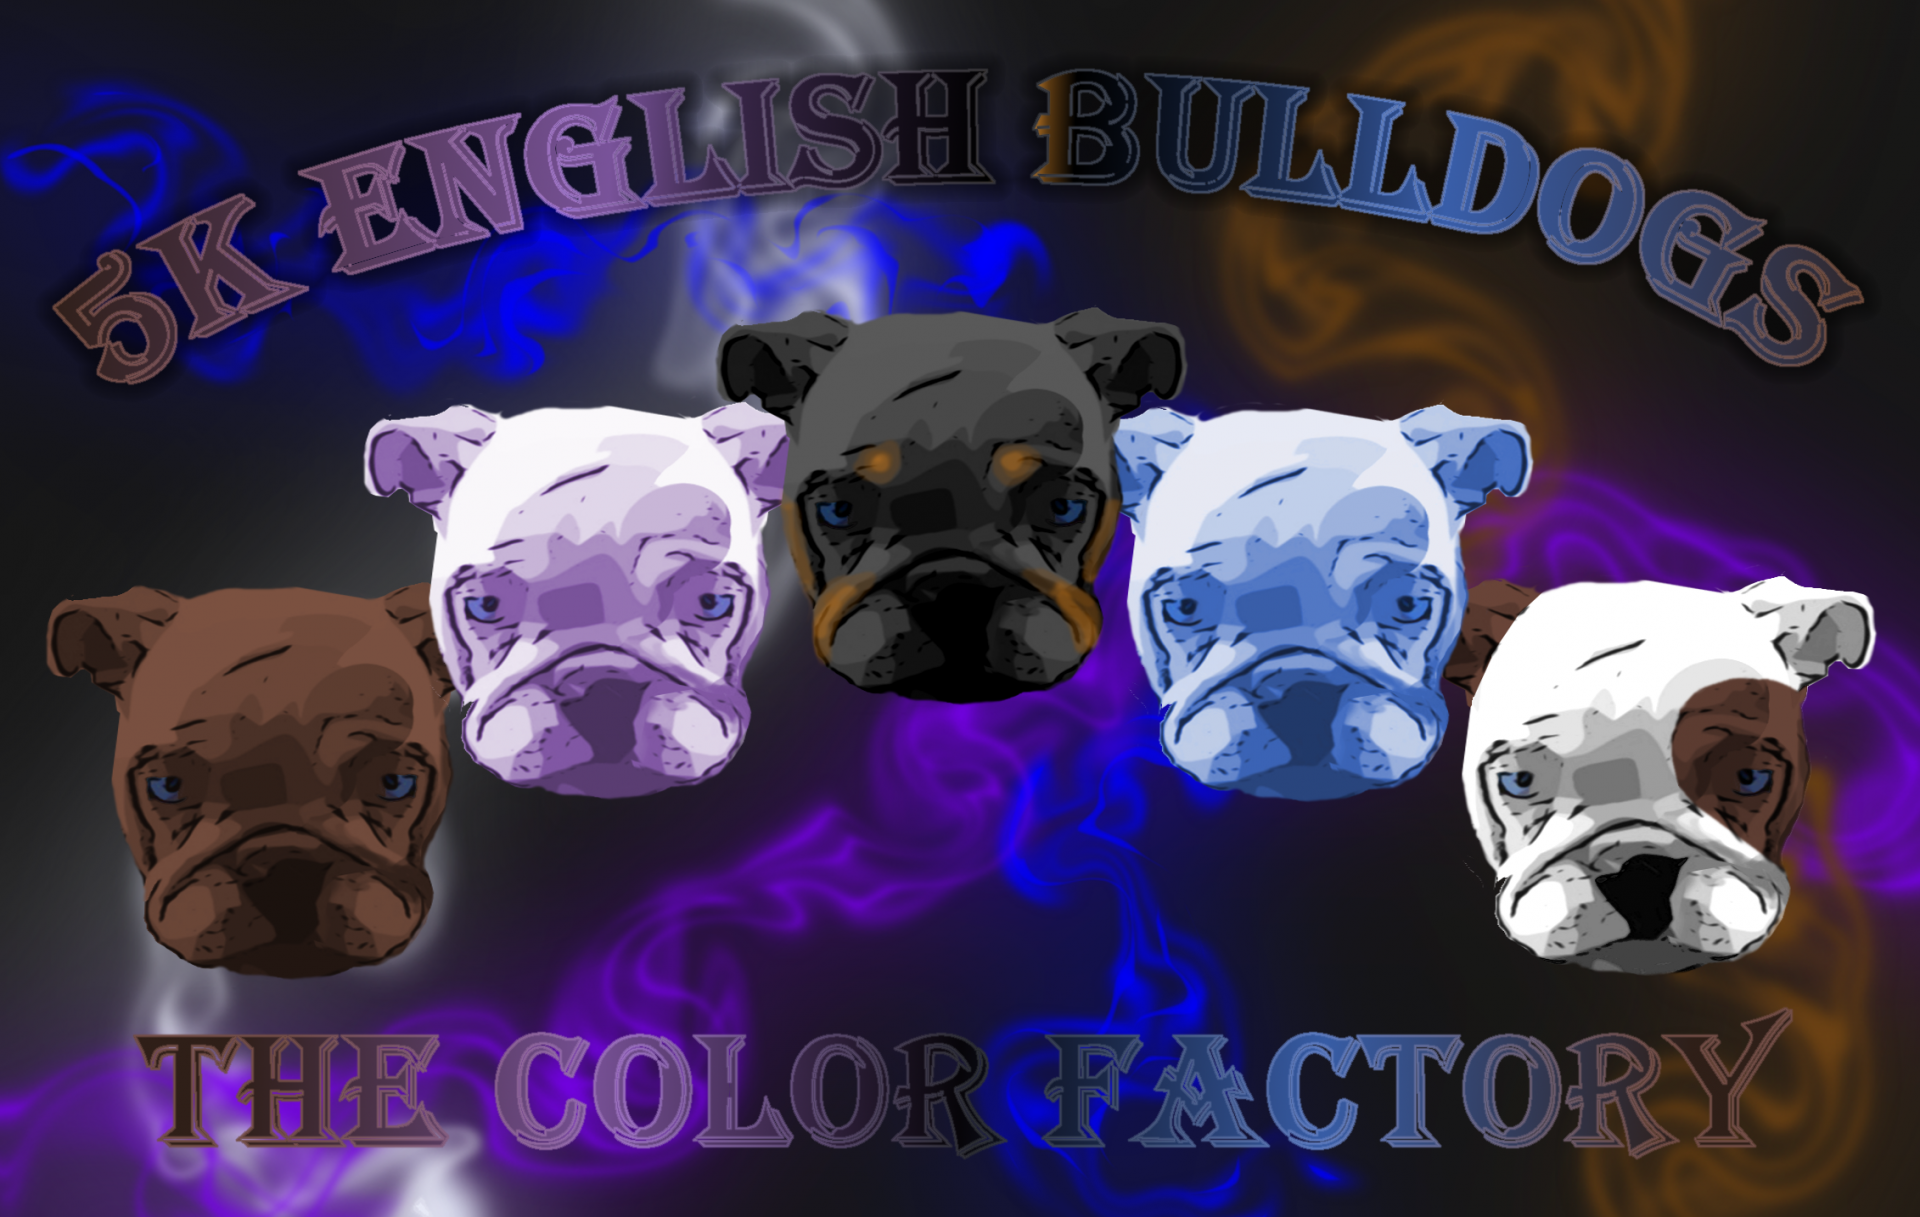 AKC Rare Color English Bulldogs-Lilac-Blue-Chocolate-Black-Mini-Merle English Bulldogs